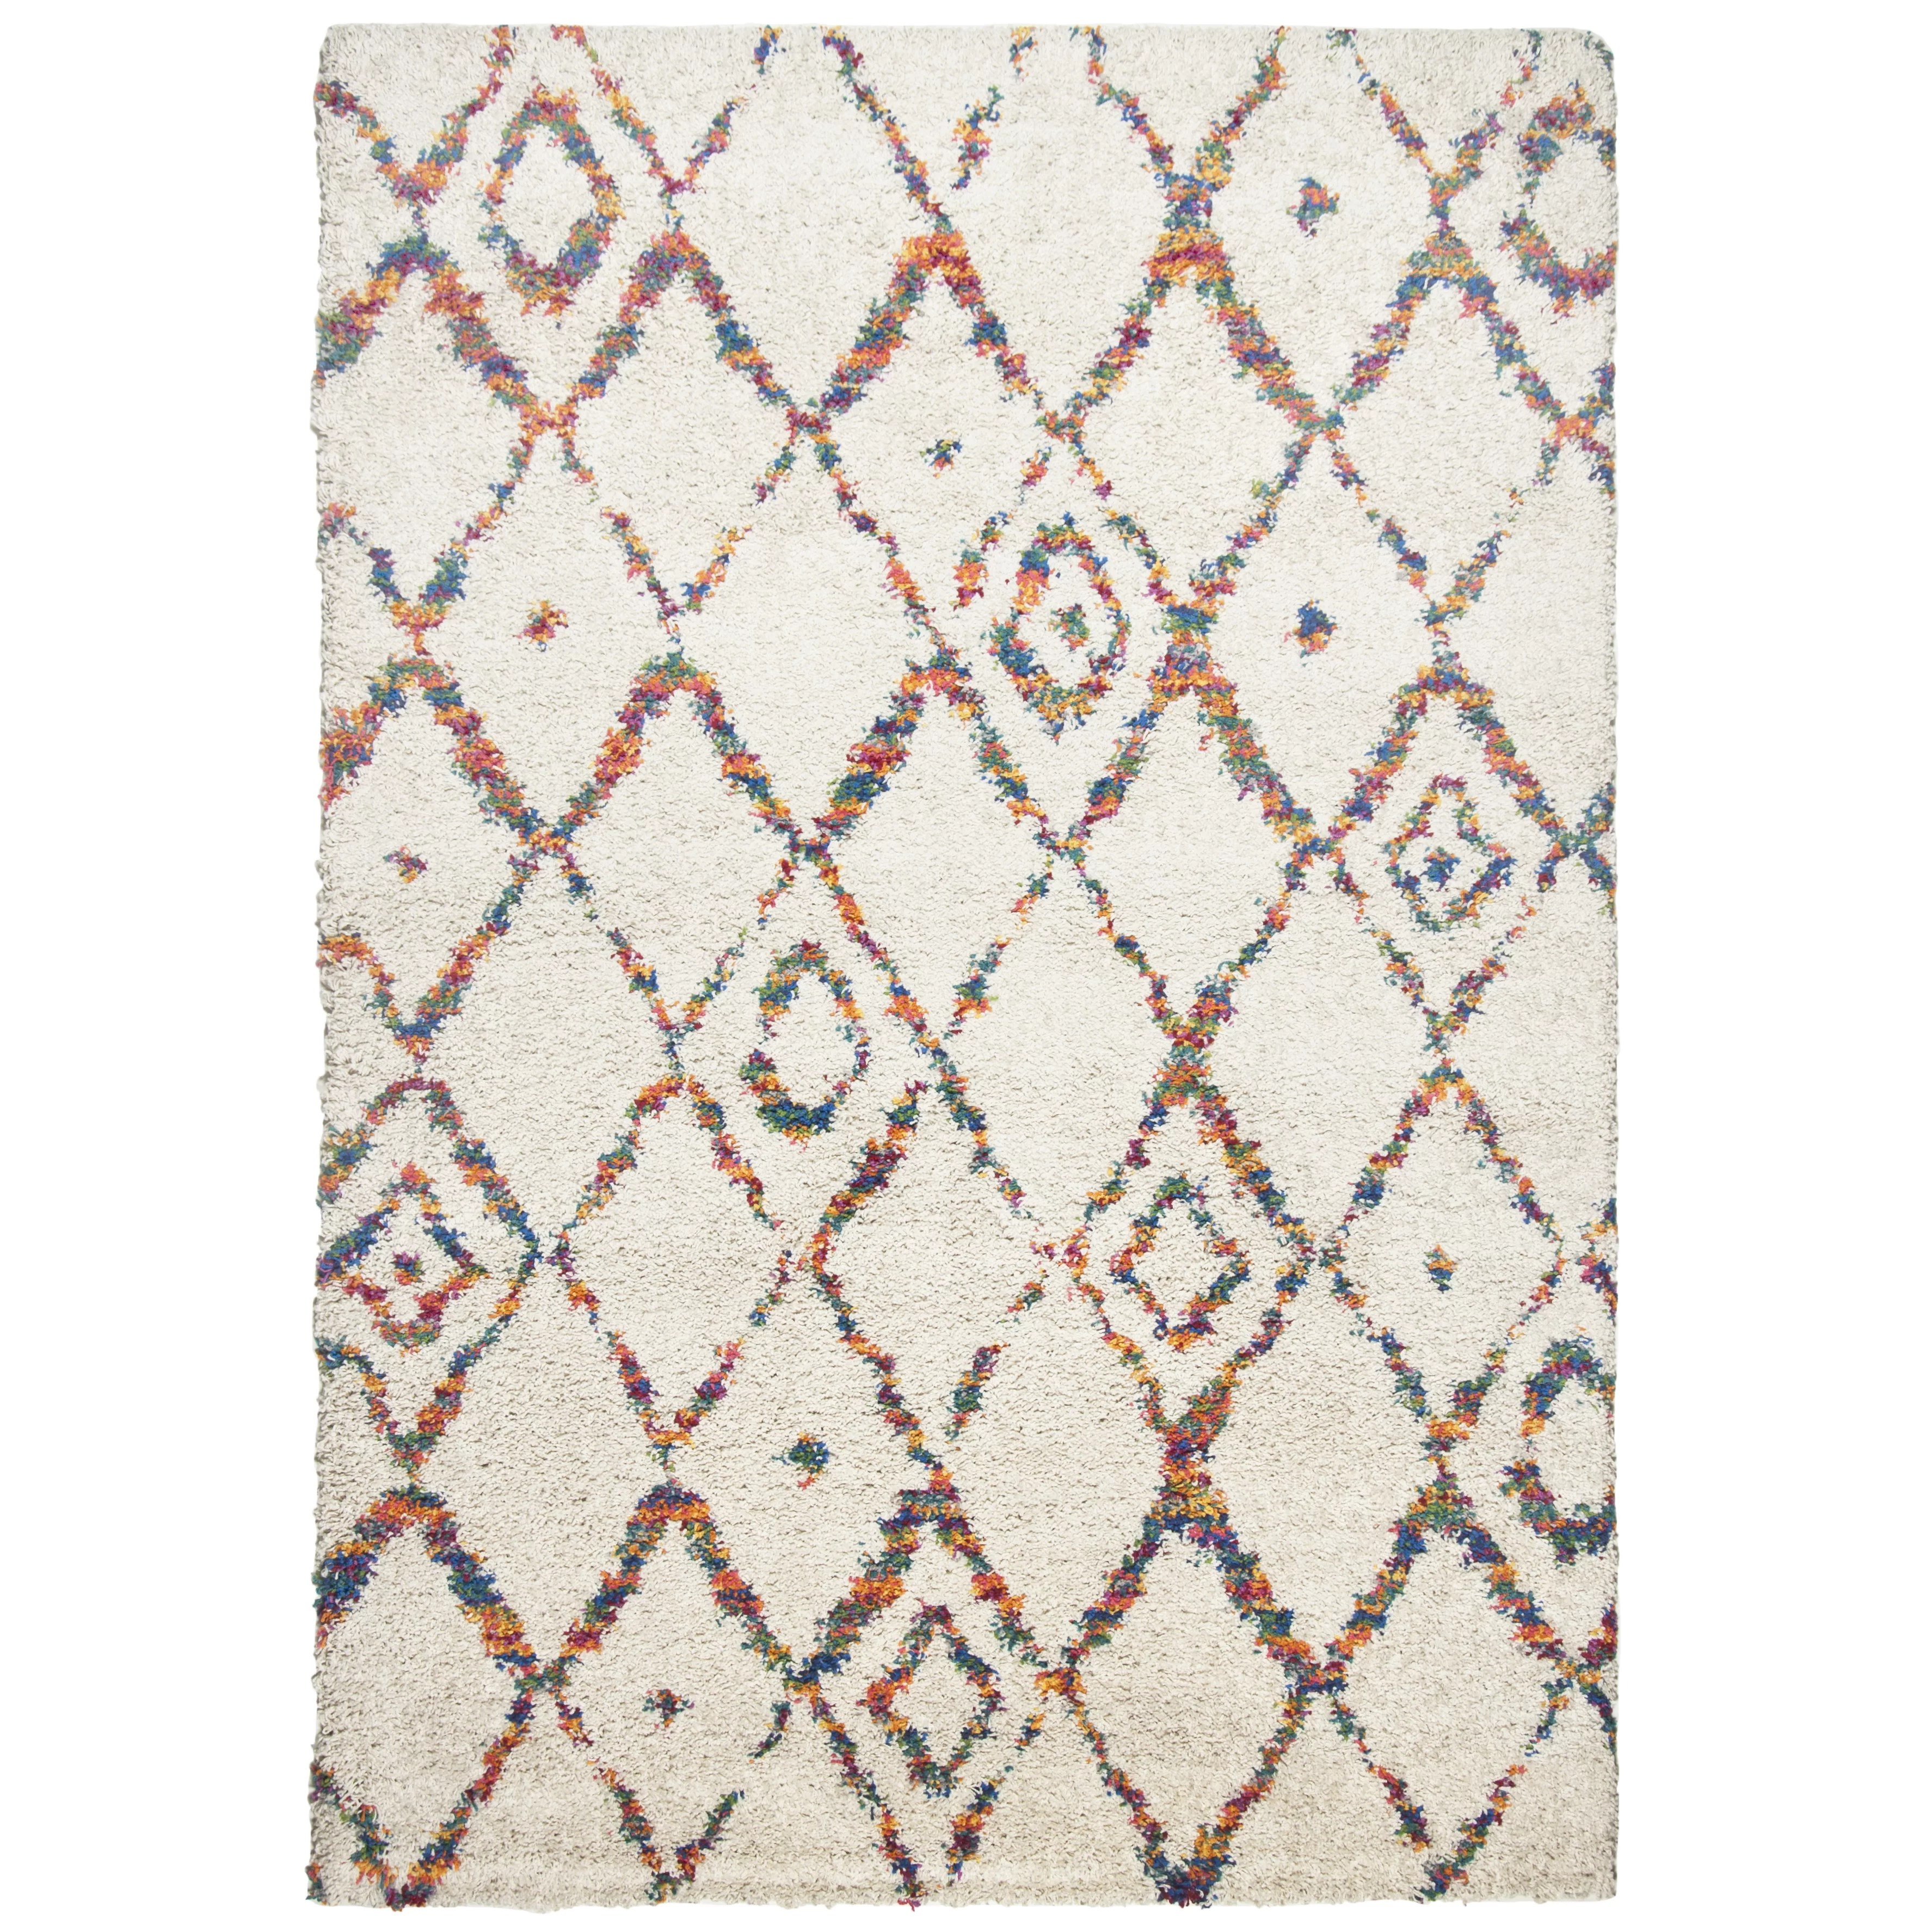 Hochflor Teppich Shaggy Flairy Theko Young Fashion White And Multi Coloured Rug Wayfair Uk